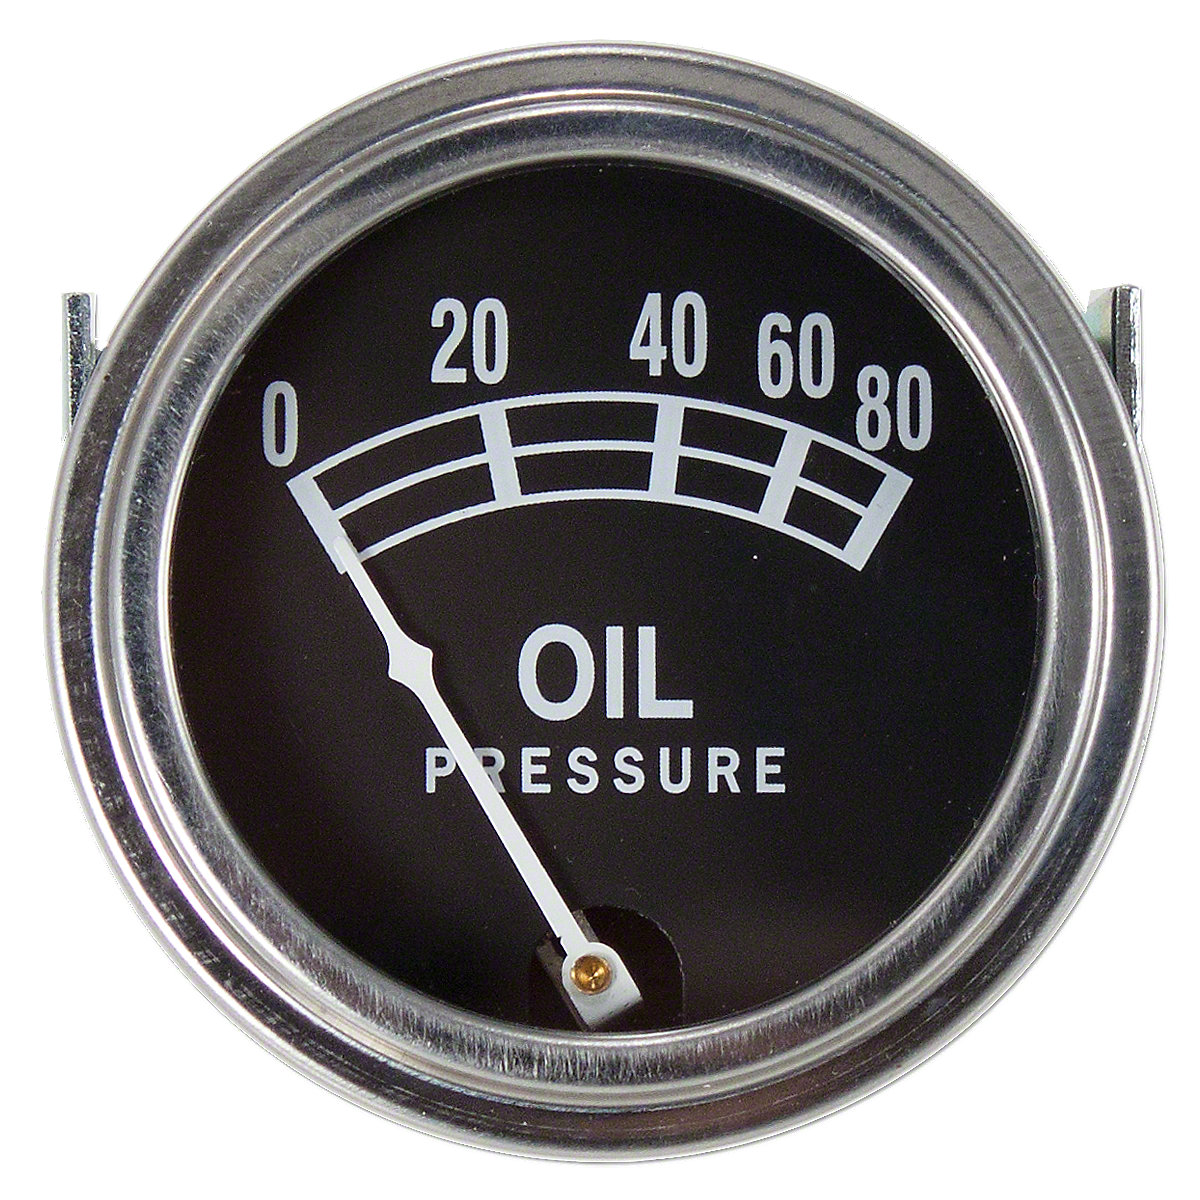 0-80 PSI Oil Pressure Gauge For Massey Ferguson: TO30, 35, 65, 85, 88, 135, 150, 165, 175, 180, FE35, Super 90,  F40, TE20, TO20, TO35, Massey Harris: Colt 21, I-244, I-330, Mustang 23, Pacer 16, Pony, 101 jr, 101 sr, 102 jr, 102 sr, 20, 22, 30, 33, 44 Sp